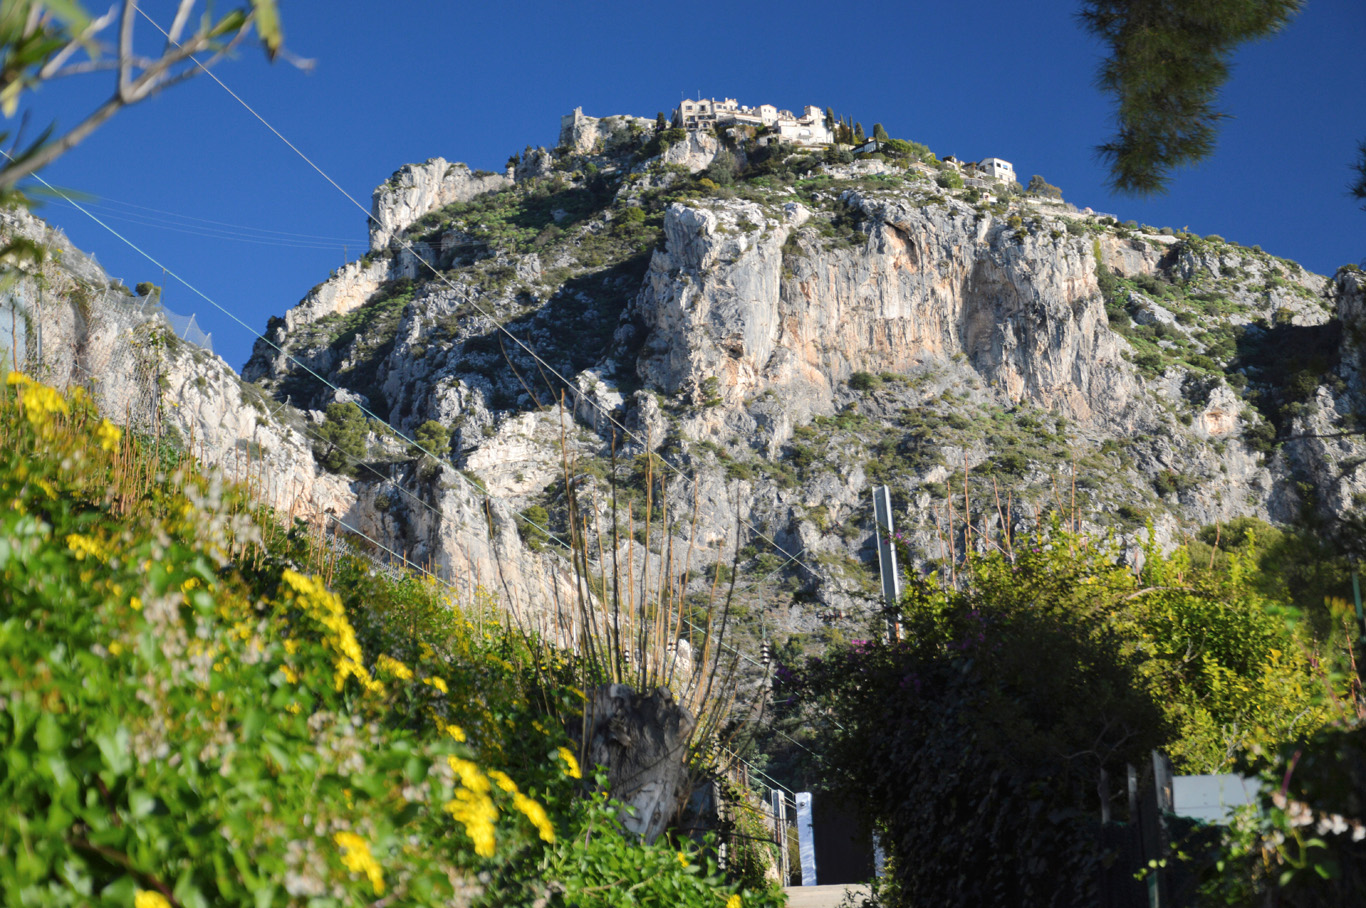 At the train station - Eze is on top of the hill